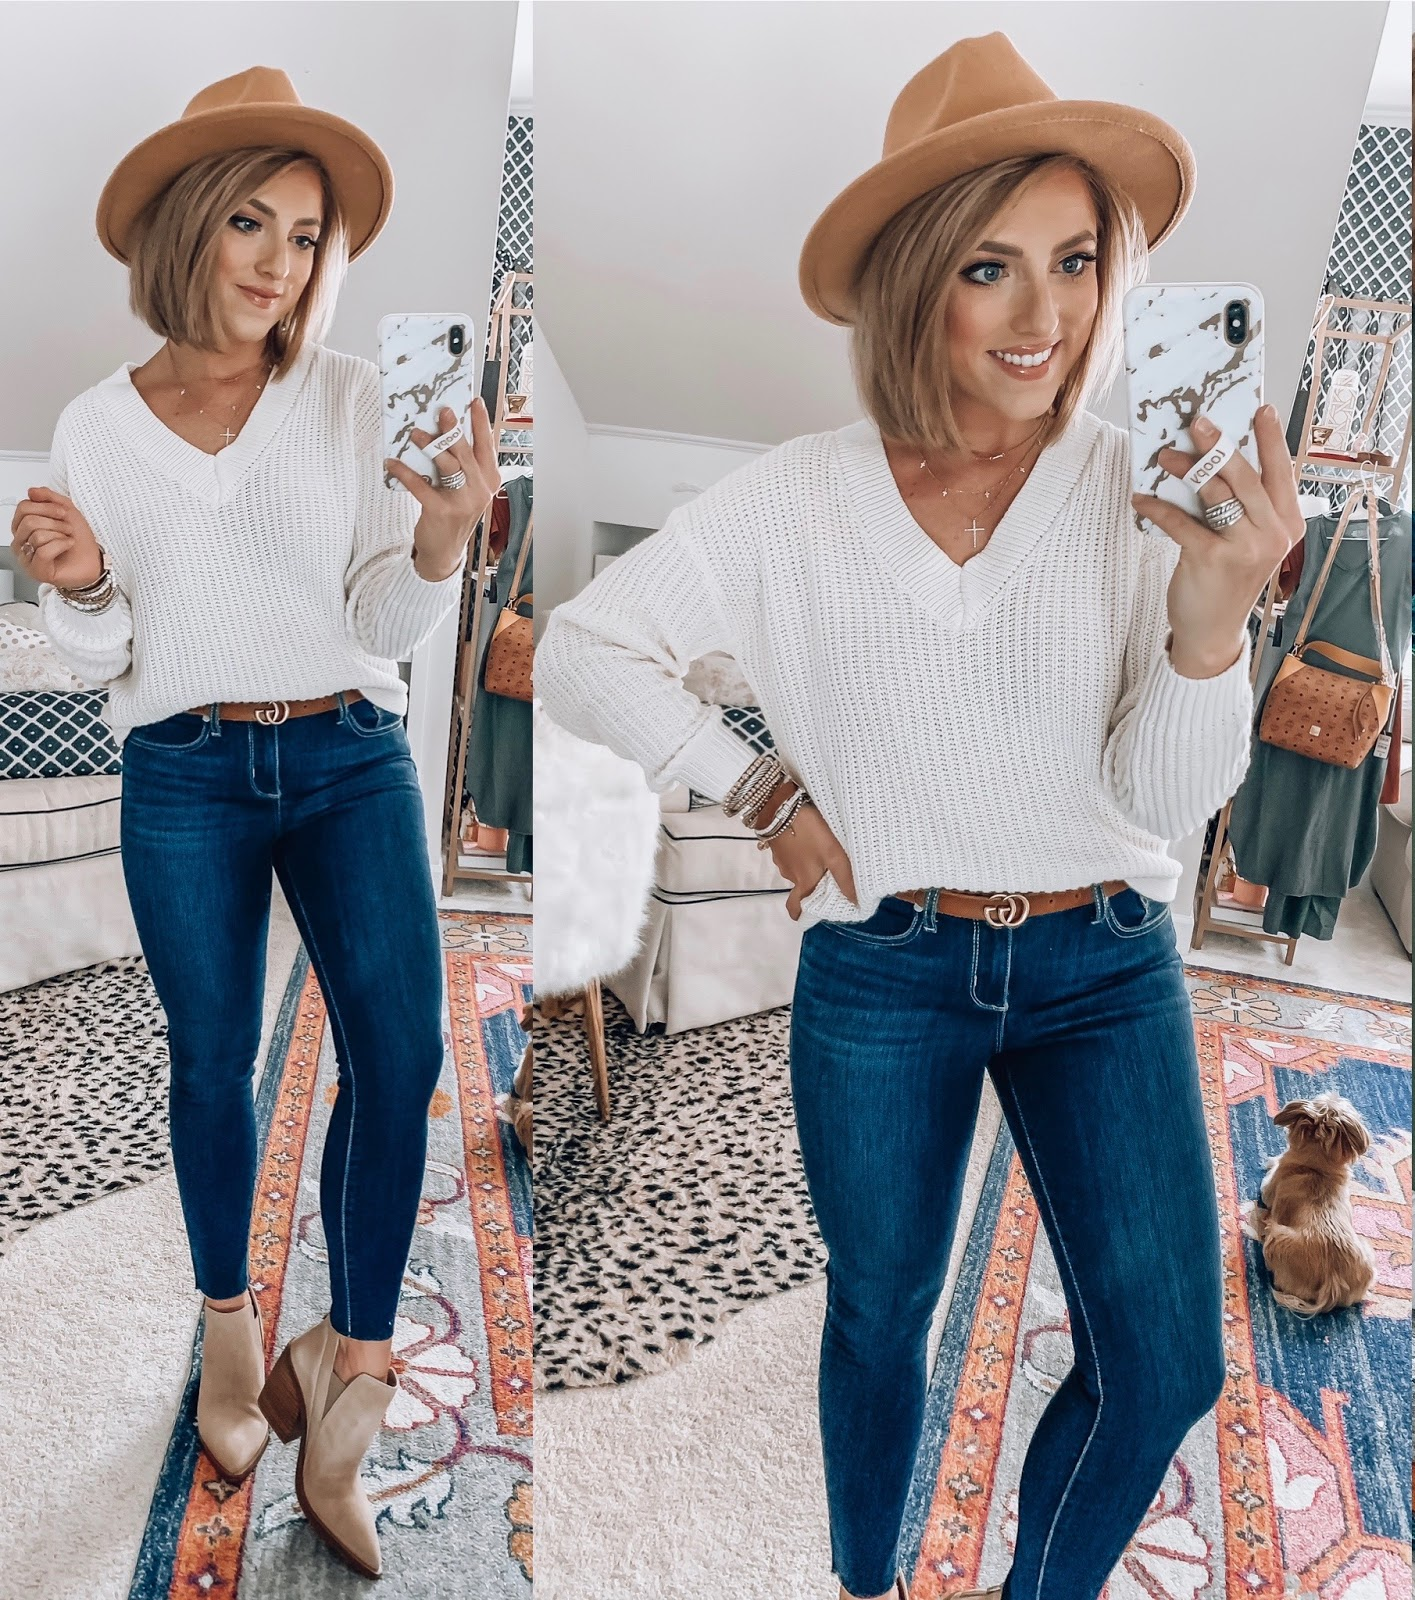 Recent Walmart Finds: Pieces you can wear now and again in the fall - Something Delightful Blog #walmartfashion #affordablefashion #fall2020fashion